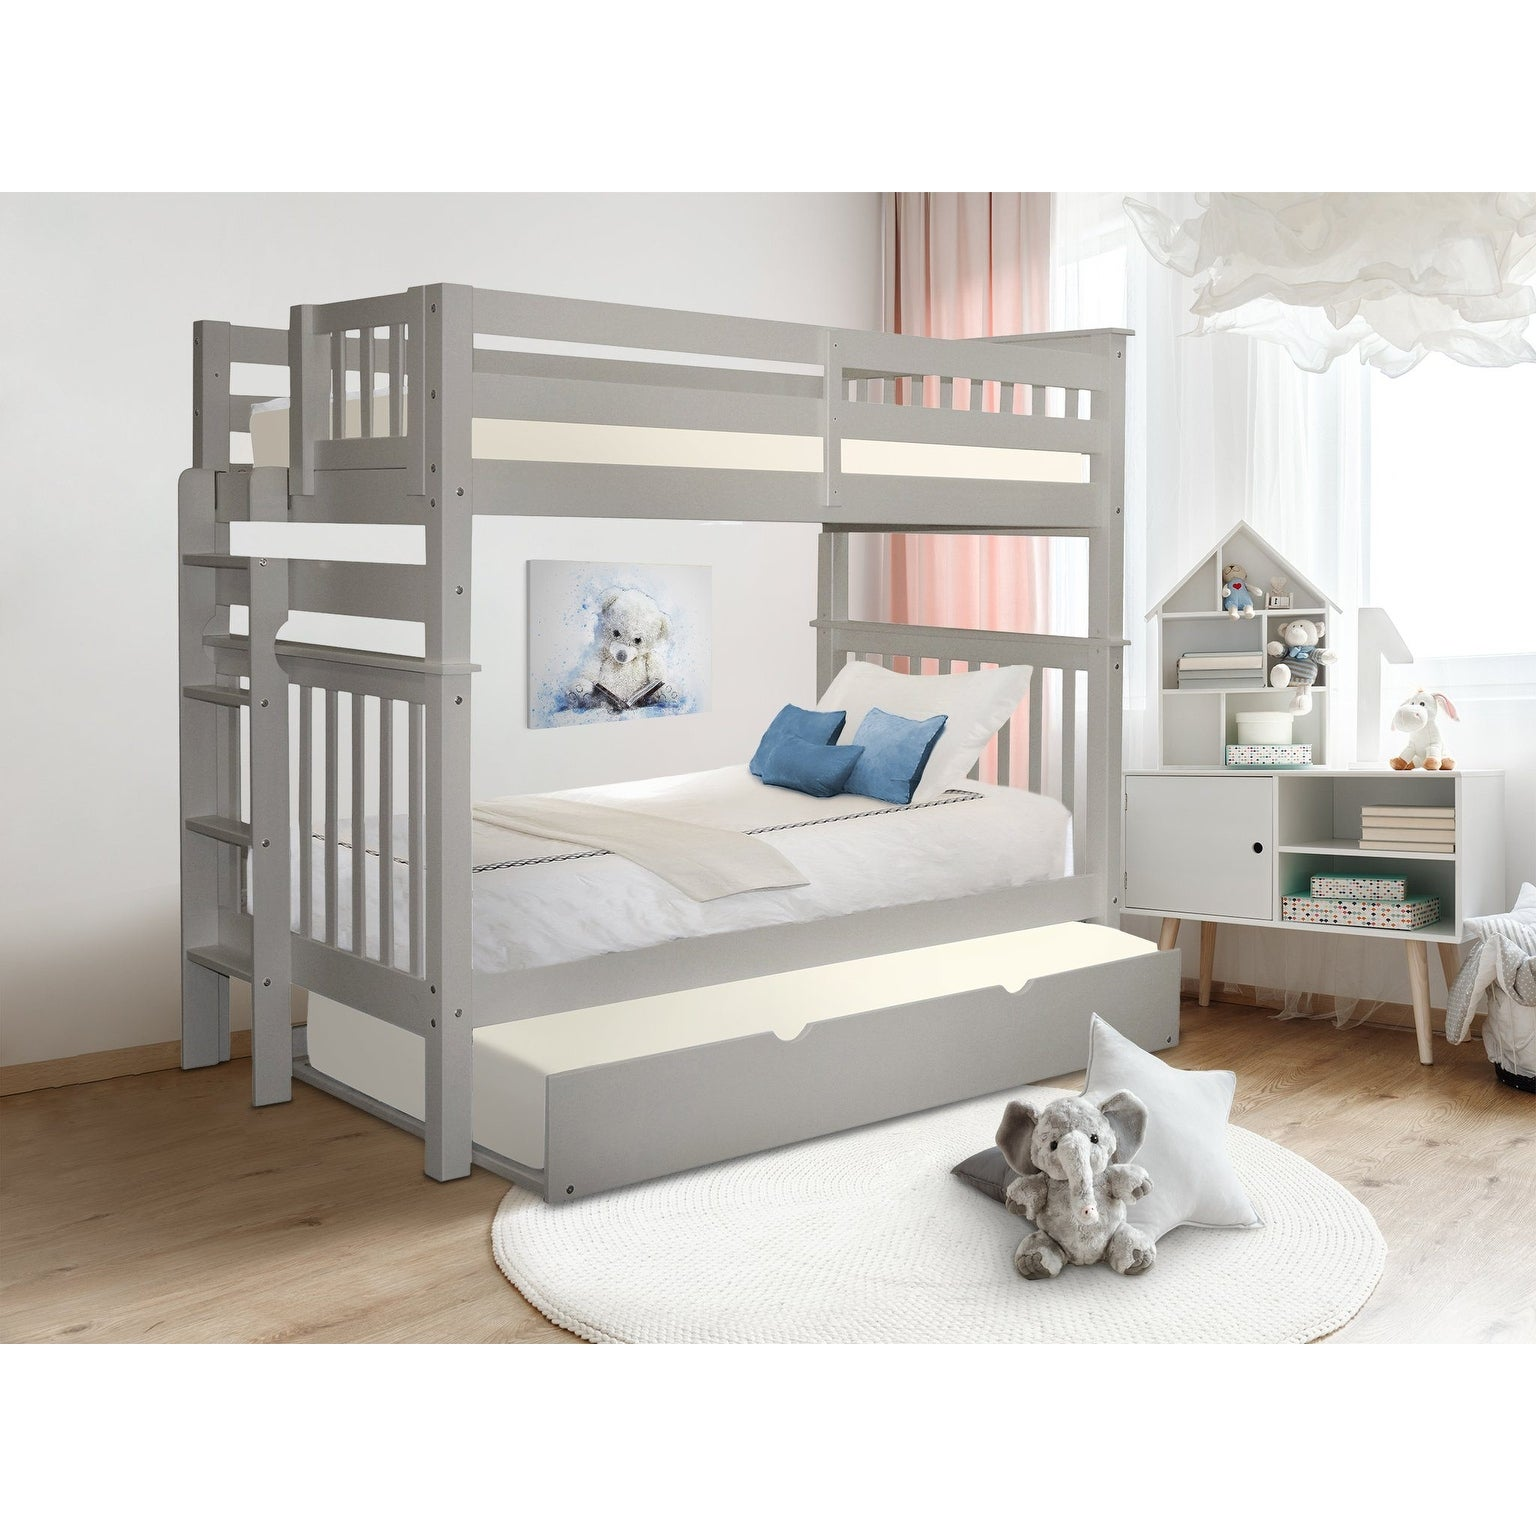 Taylor Olive Trillium Tall Twin Over Twin Bunk Bed With Twin Trundle Overstock 14229151